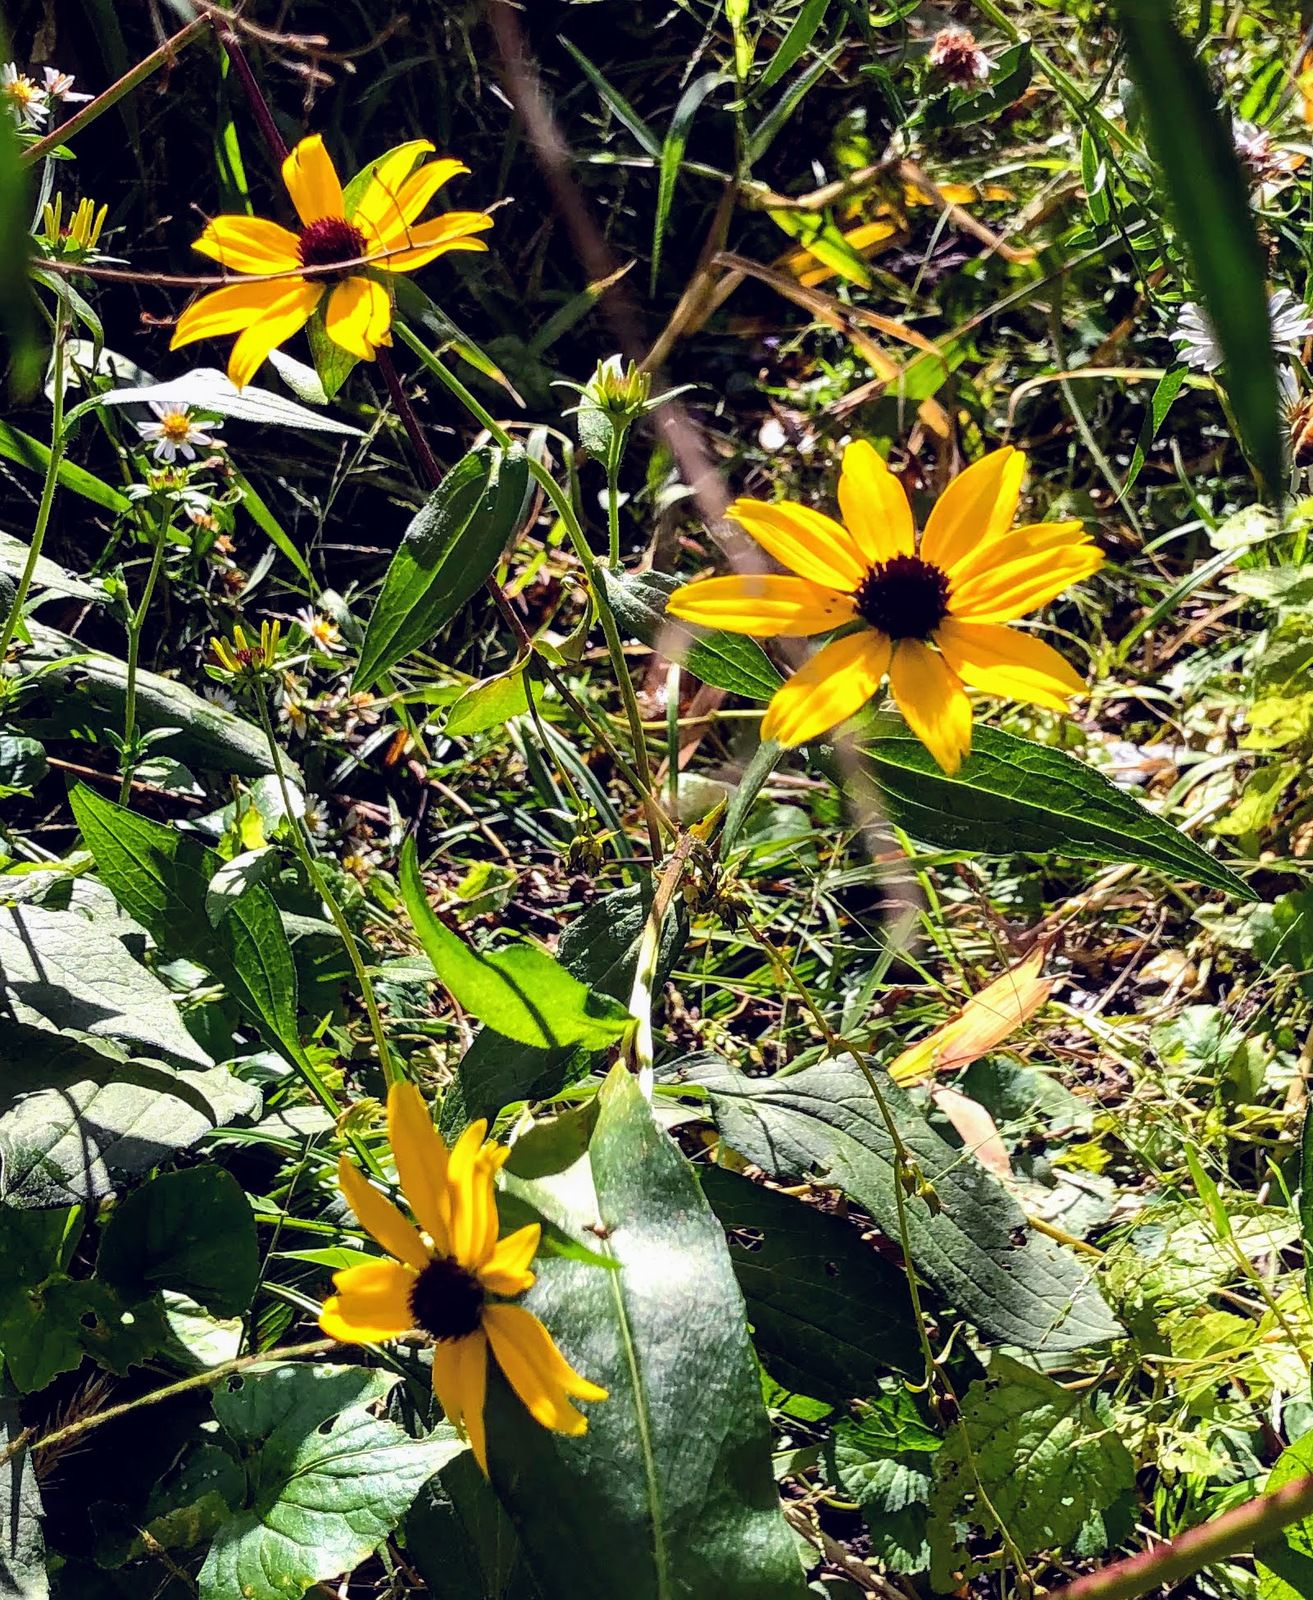 Brown eyed-susans